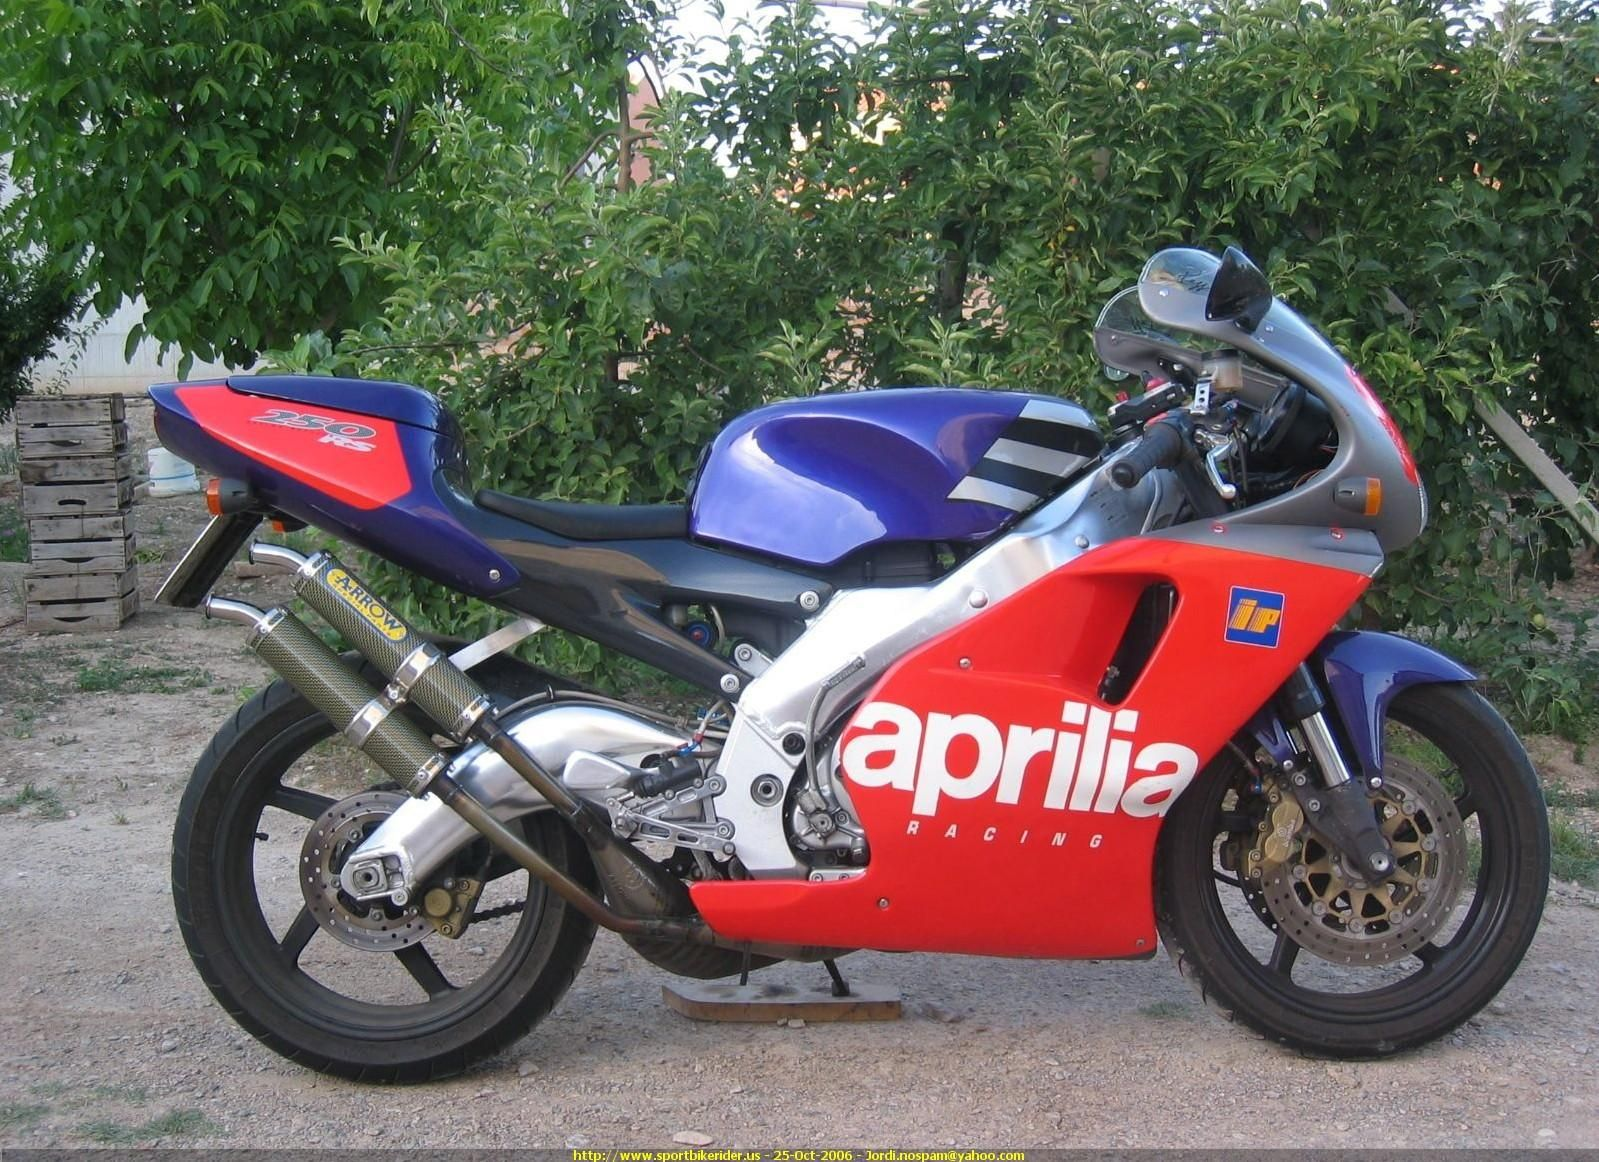 1995 aprilia rs 250 aprilia pinterest more vale 46 street bikes and ducati ideas. Black Bedroom Furniture Sets. Home Design Ideas